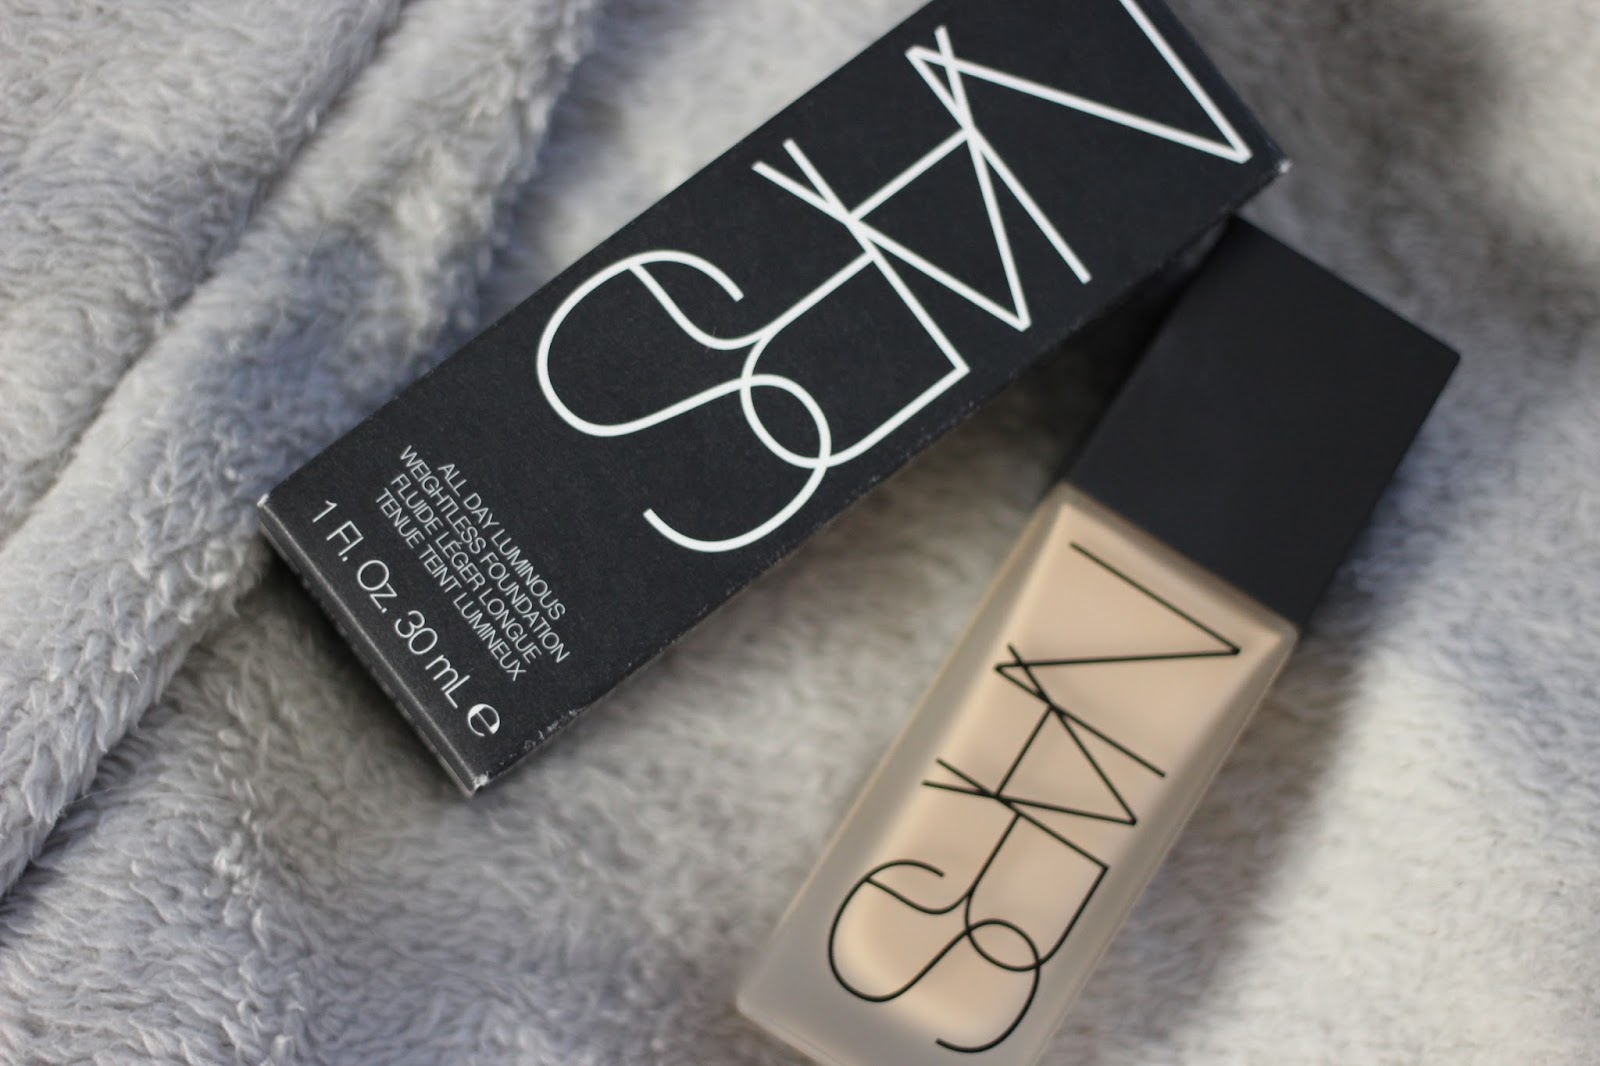 NARS-All-Day-Luminous-Weightless-Foundation-Review